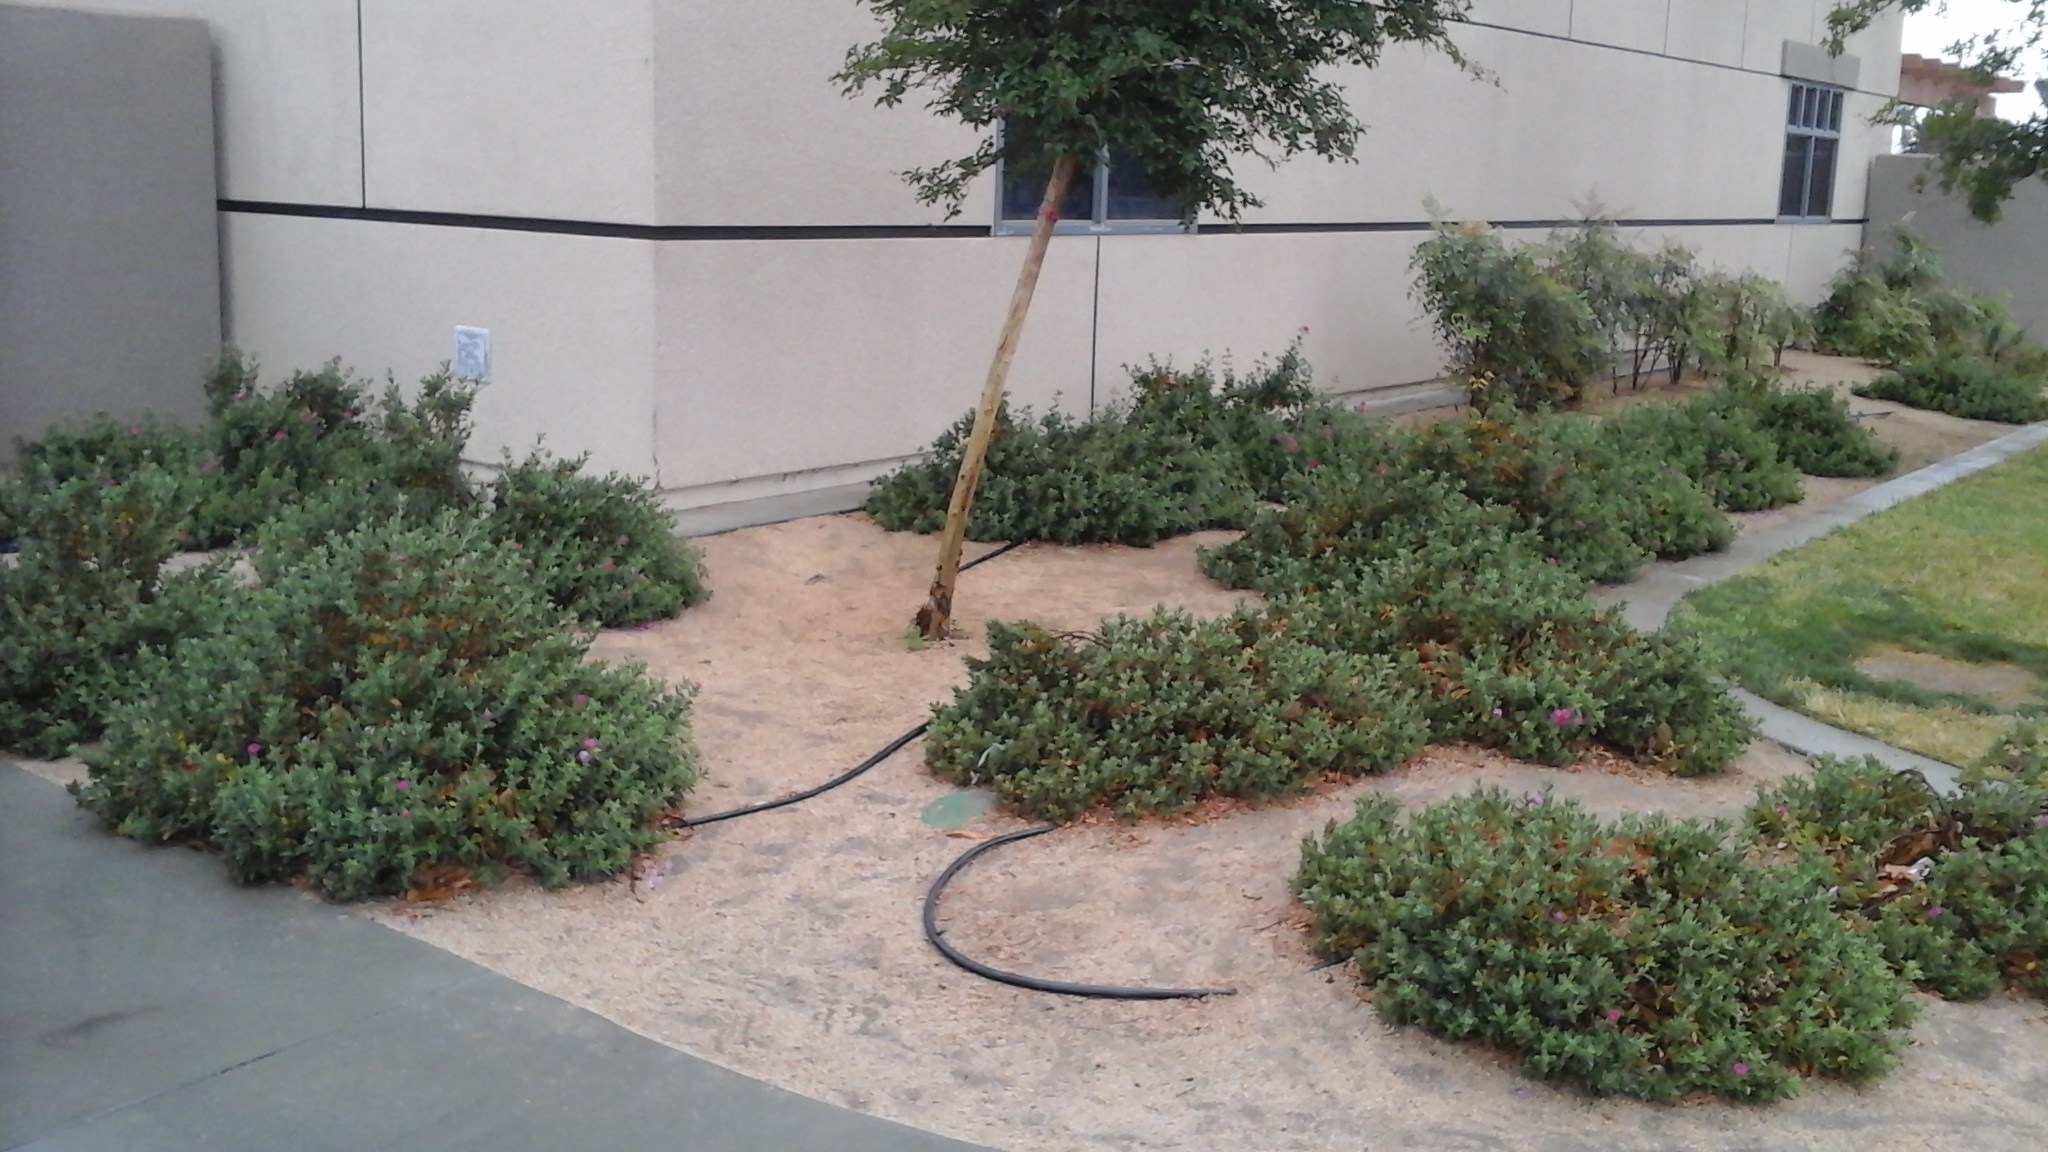 Drought resistant plants project - Jacob Wiens